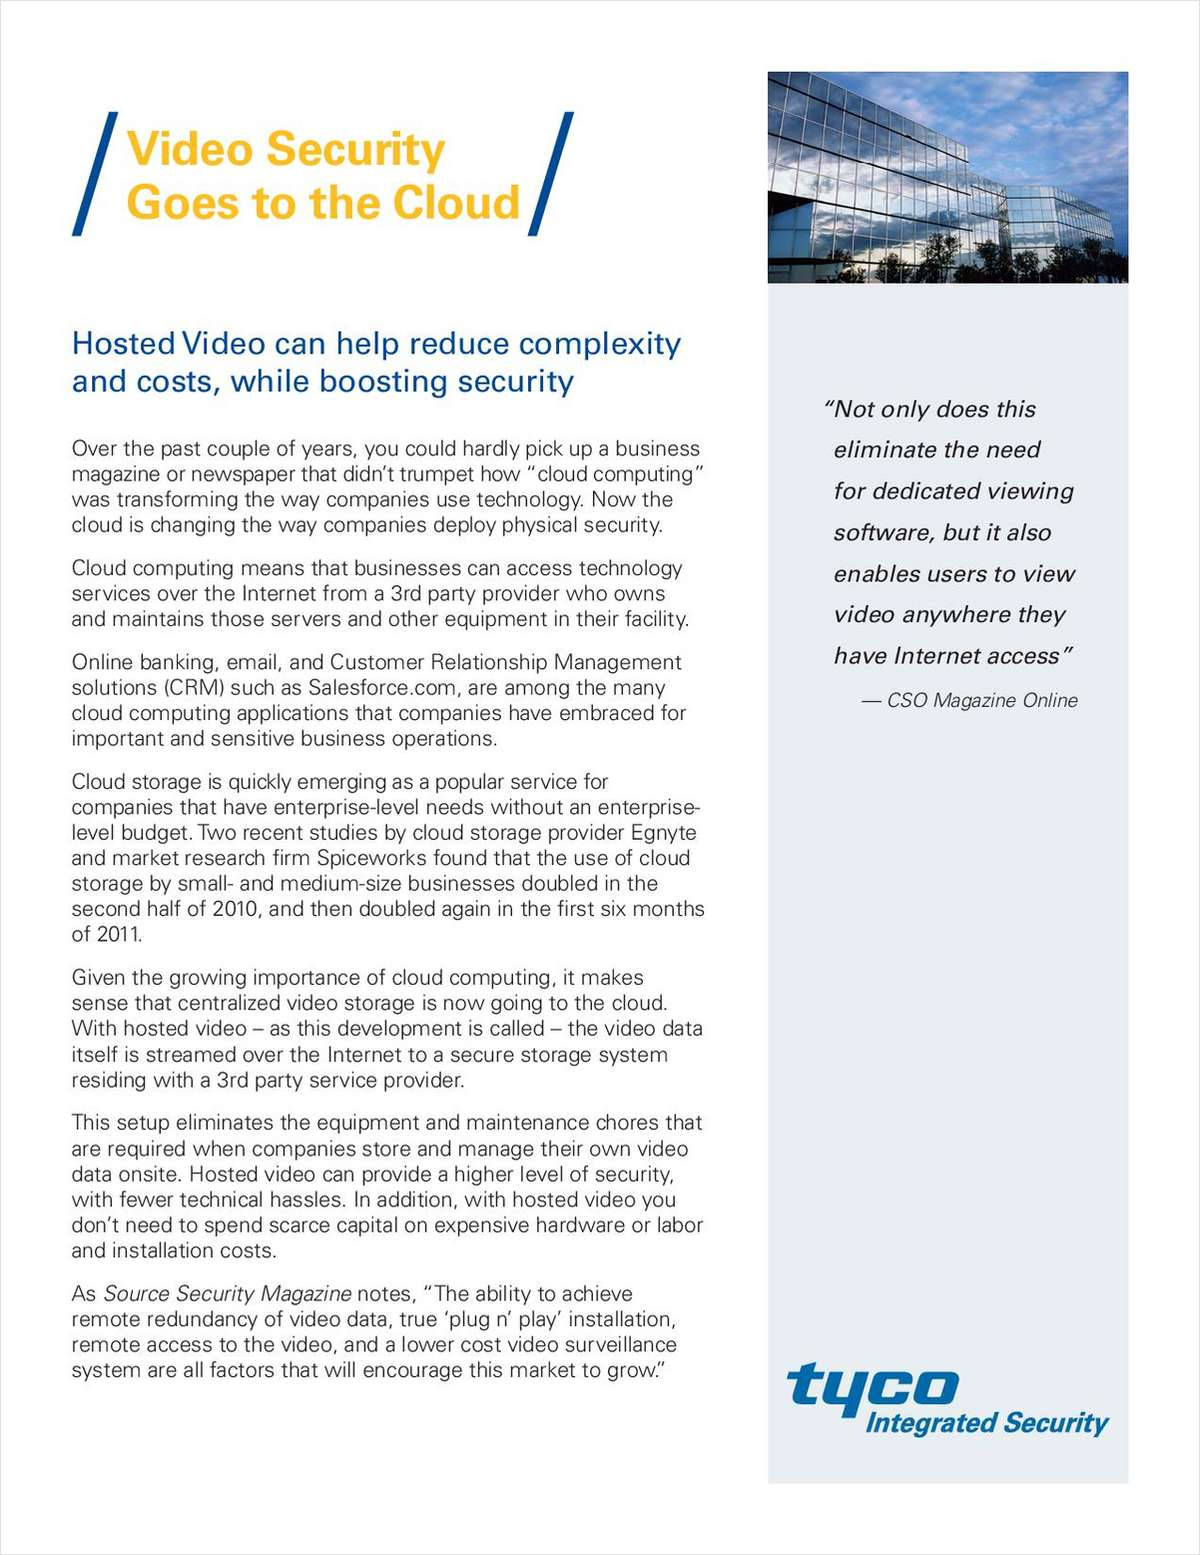 Video Security Goes To The Cloud